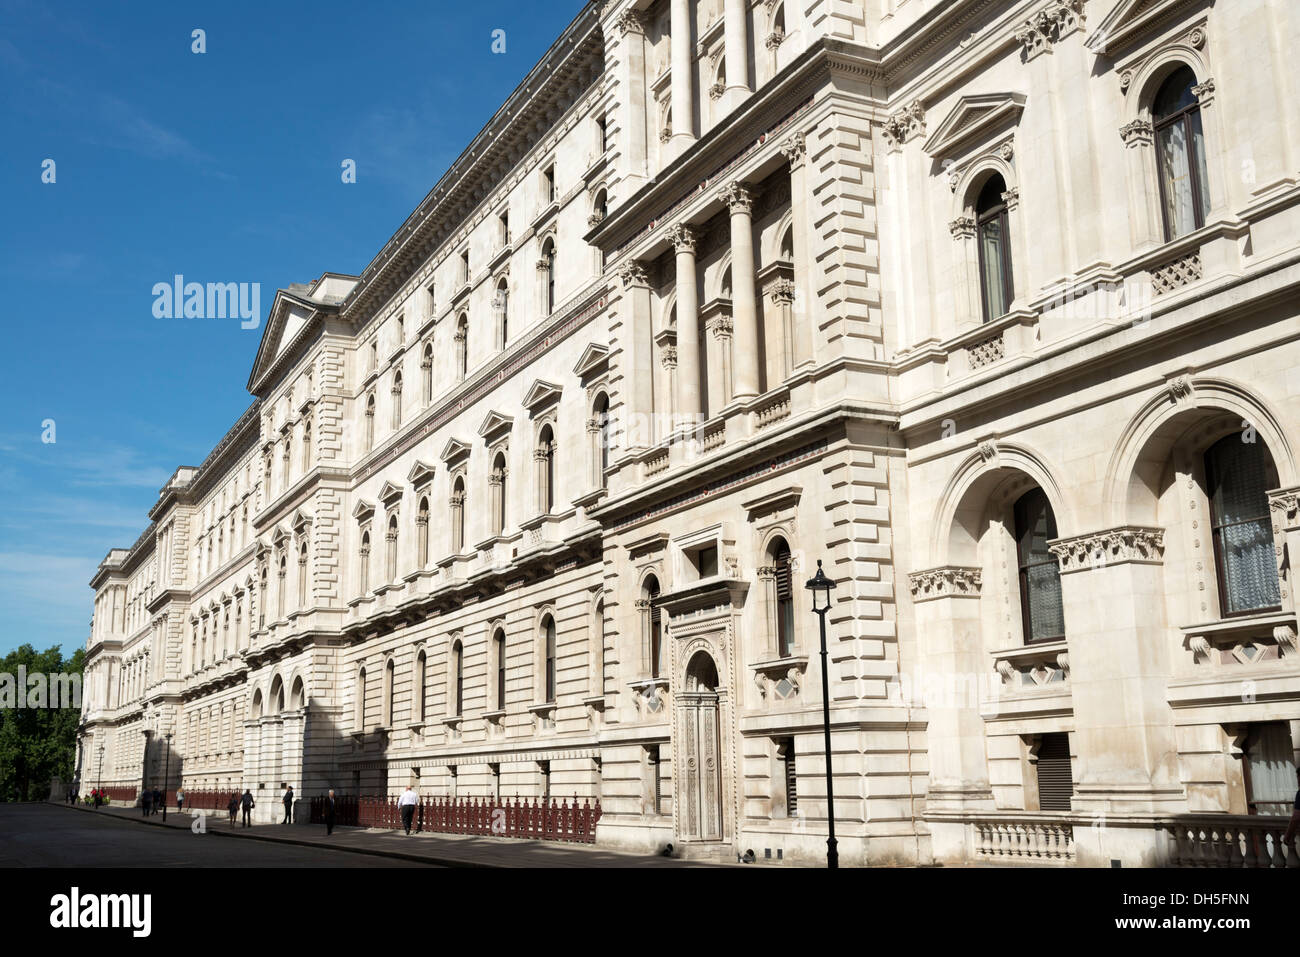 British foreign office london stock photos british foreign office london stock images alamy - British foreign commonwealth office ...